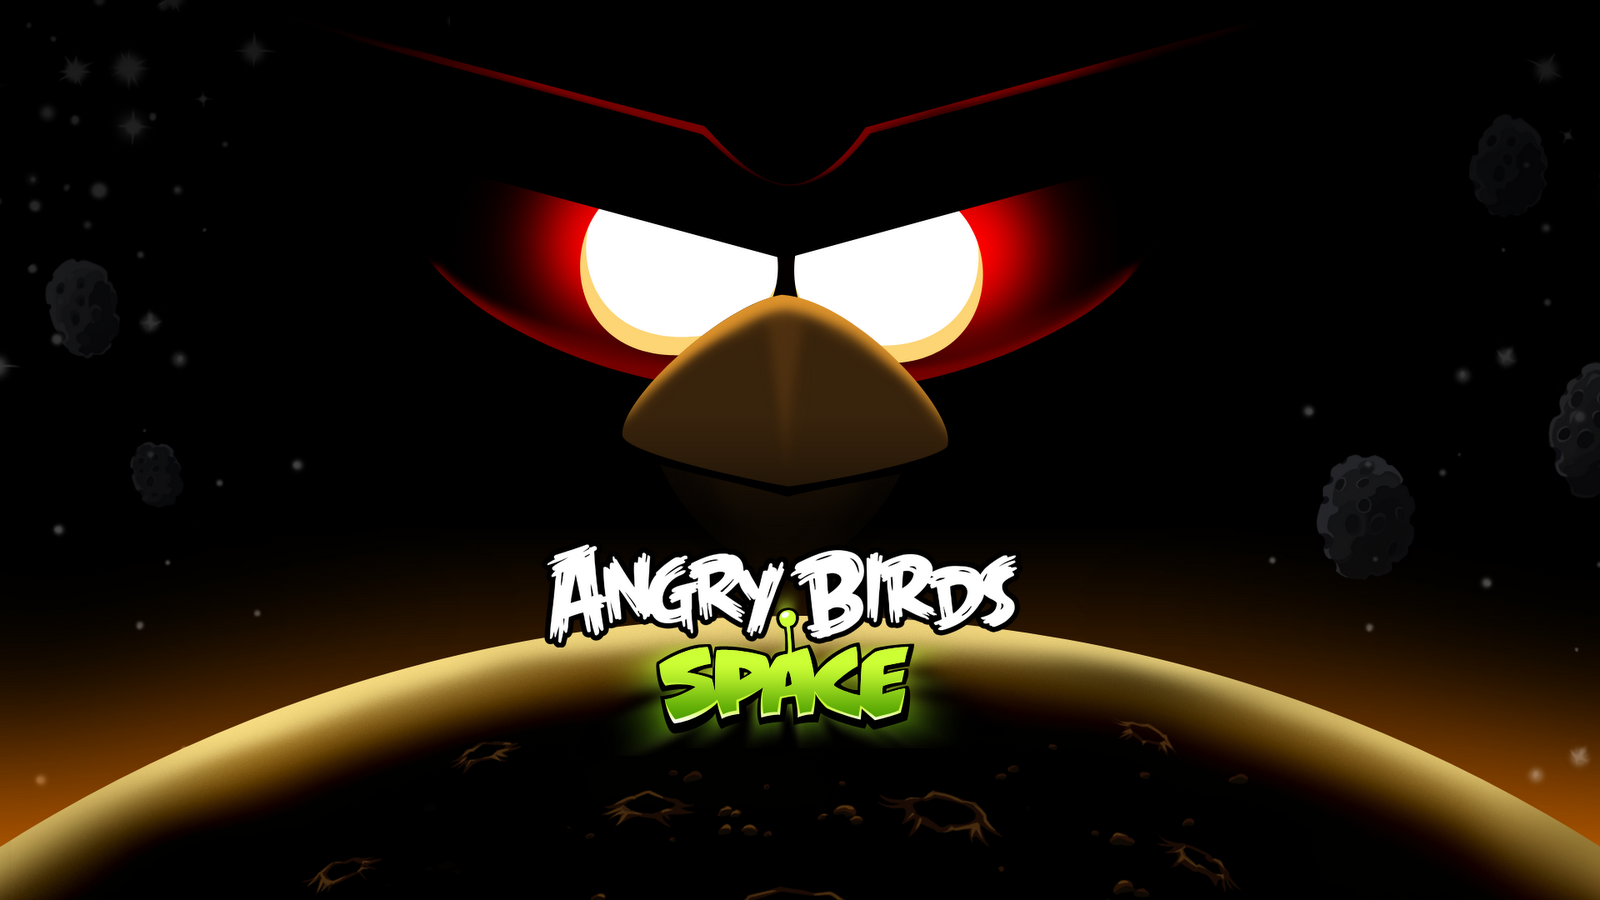 Angry Birds Space Wallpaper Wallpaper Graphic and Vector 1600x900